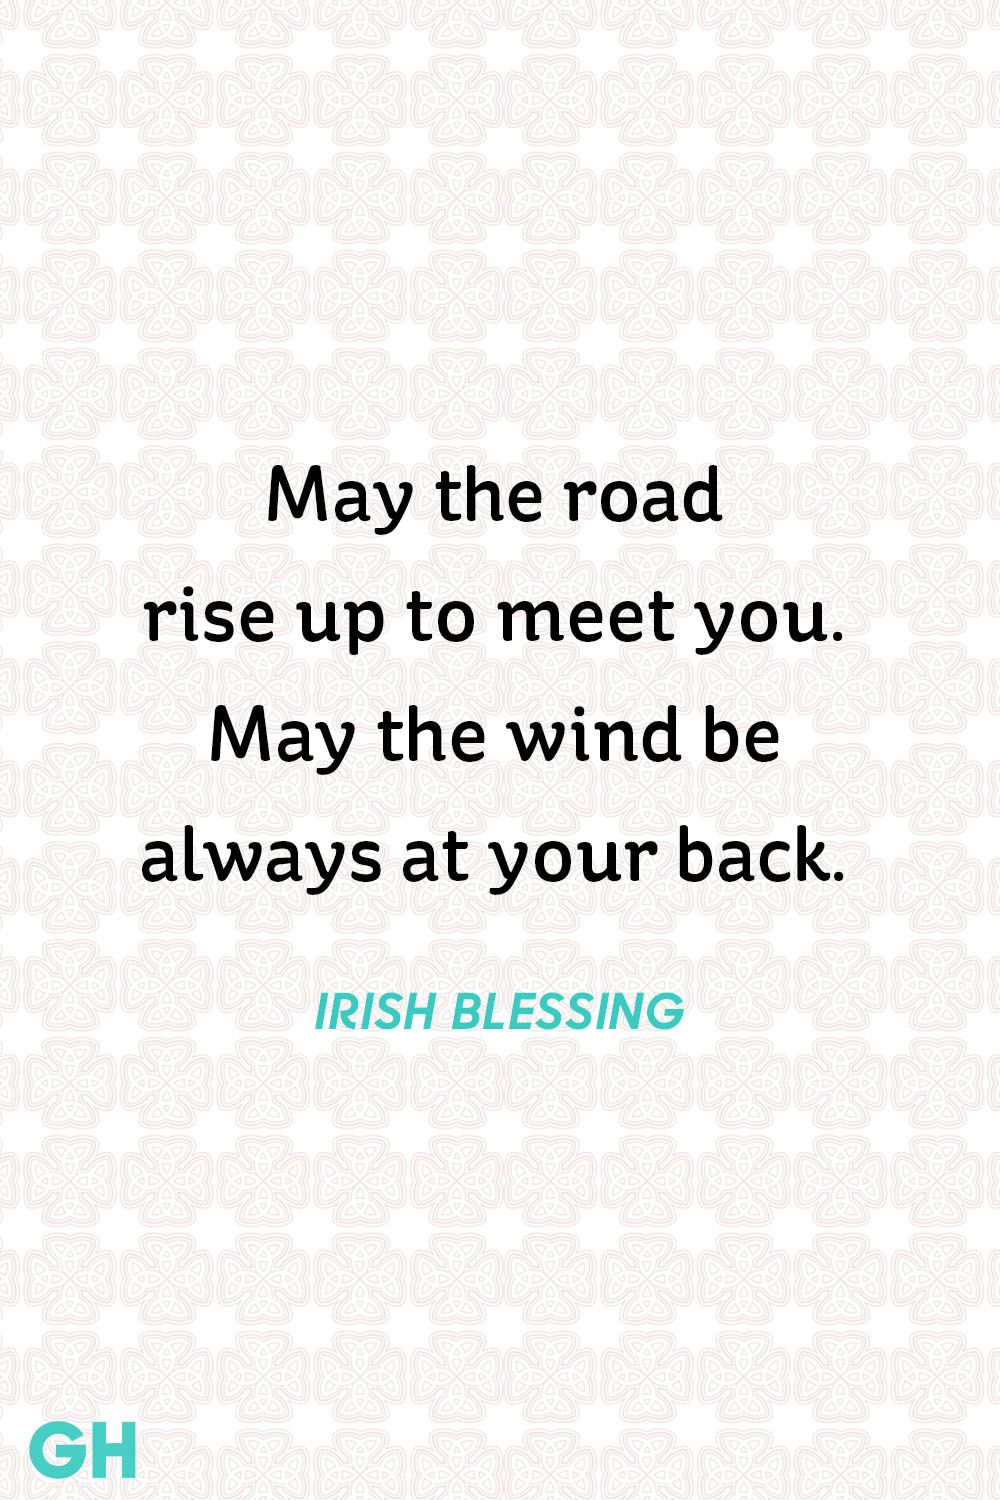 16 st patricks day quotes best irish sayings for st paddys day kristyandbryce Choice Image